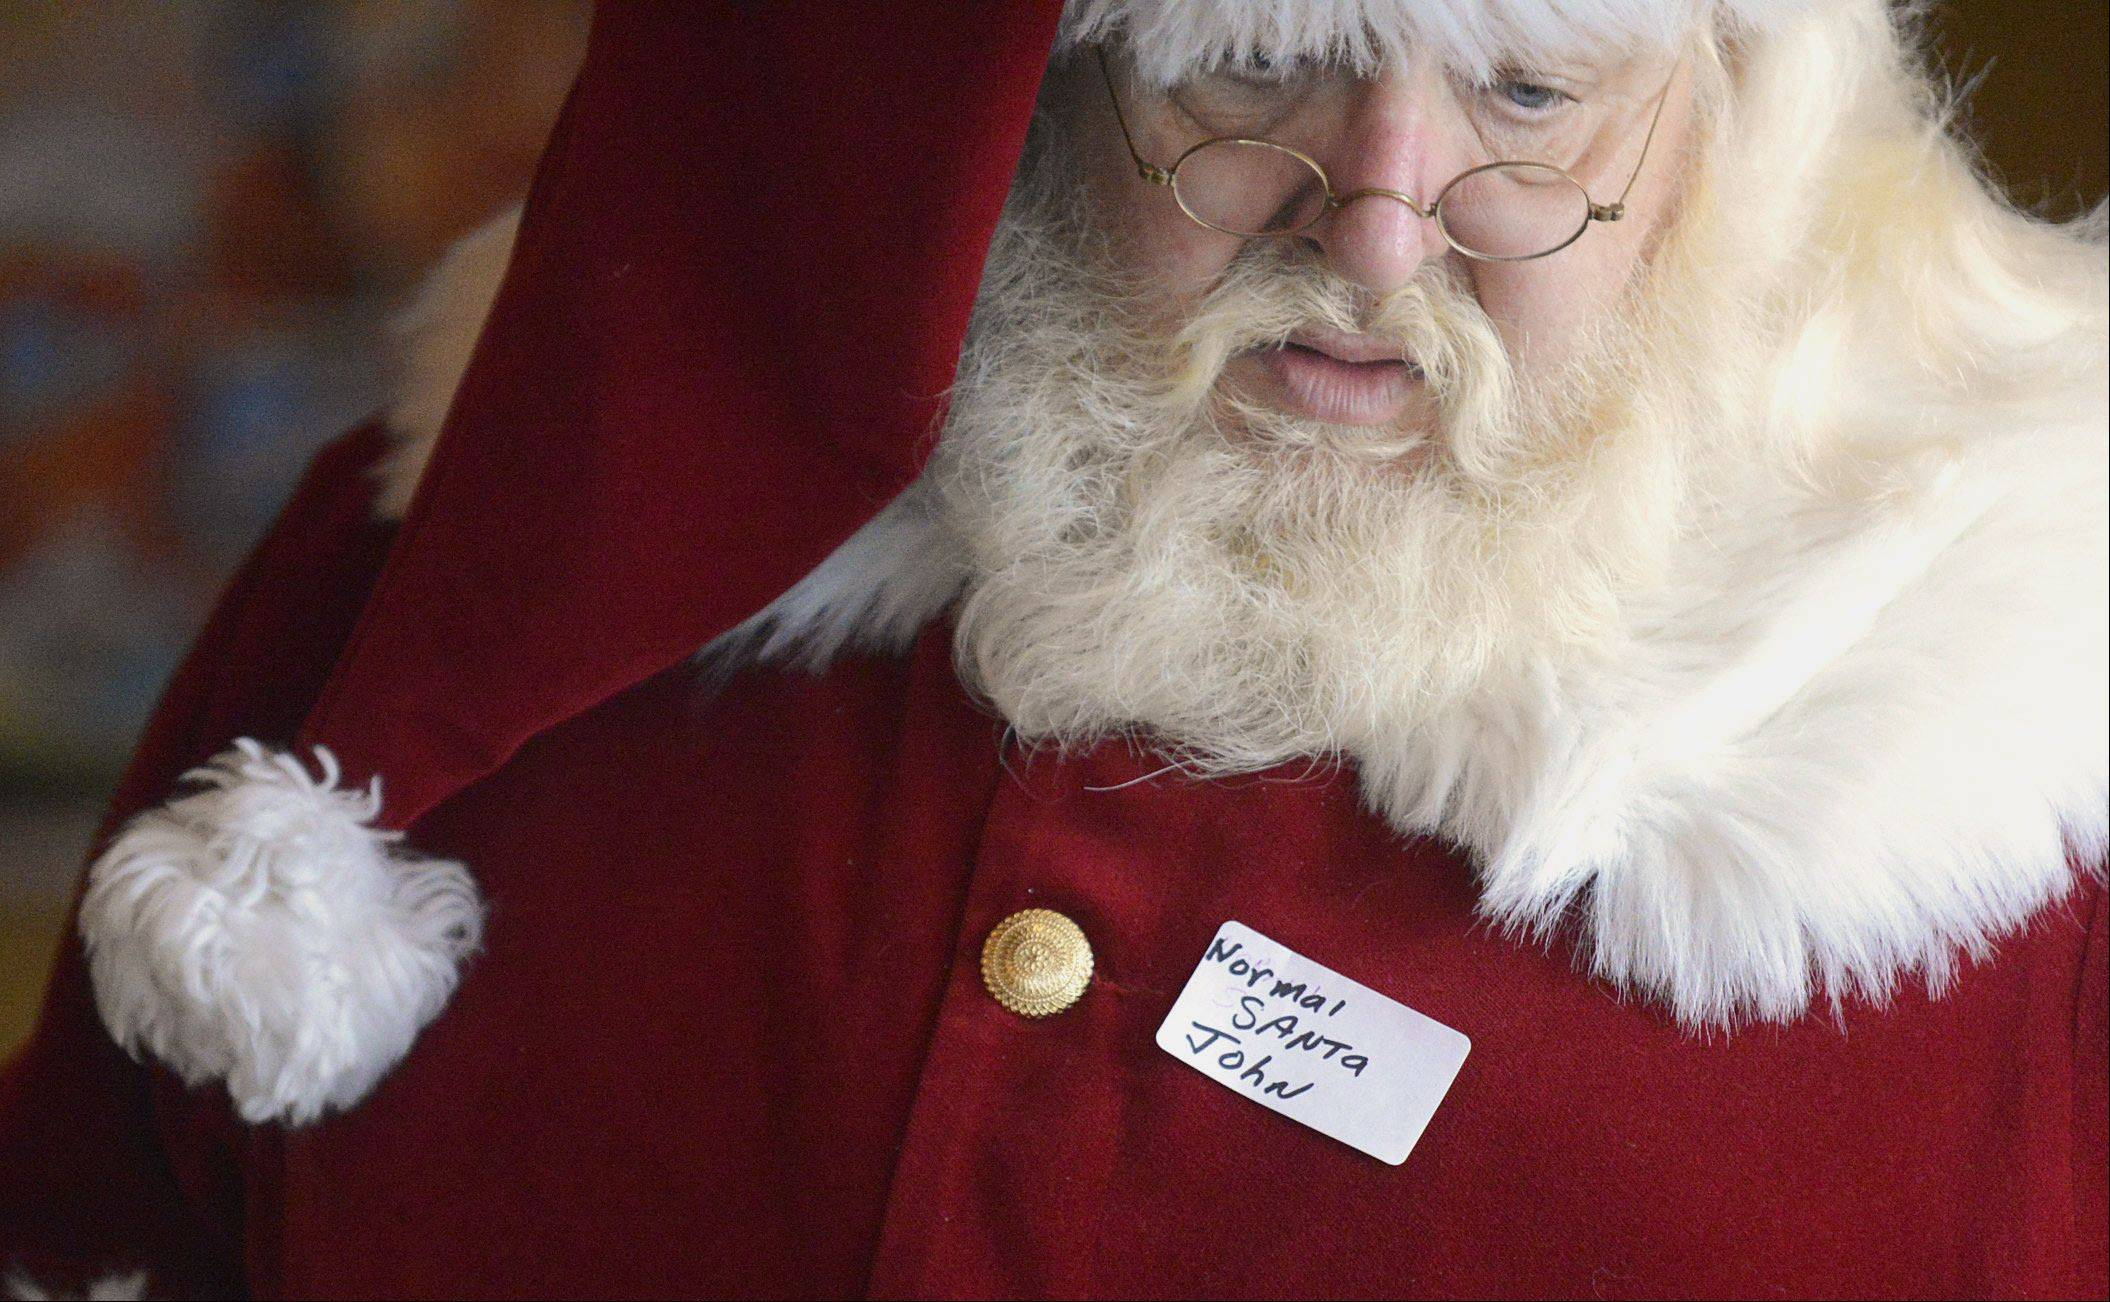 John Medley of Normal arrived in full costume for the gathering of Santas and Mrs. Santas of Illinois Saturday in Aurora. Medley has been Santa for 38 years and his wife Dorothy has been Mrs. Claus for 32 years.